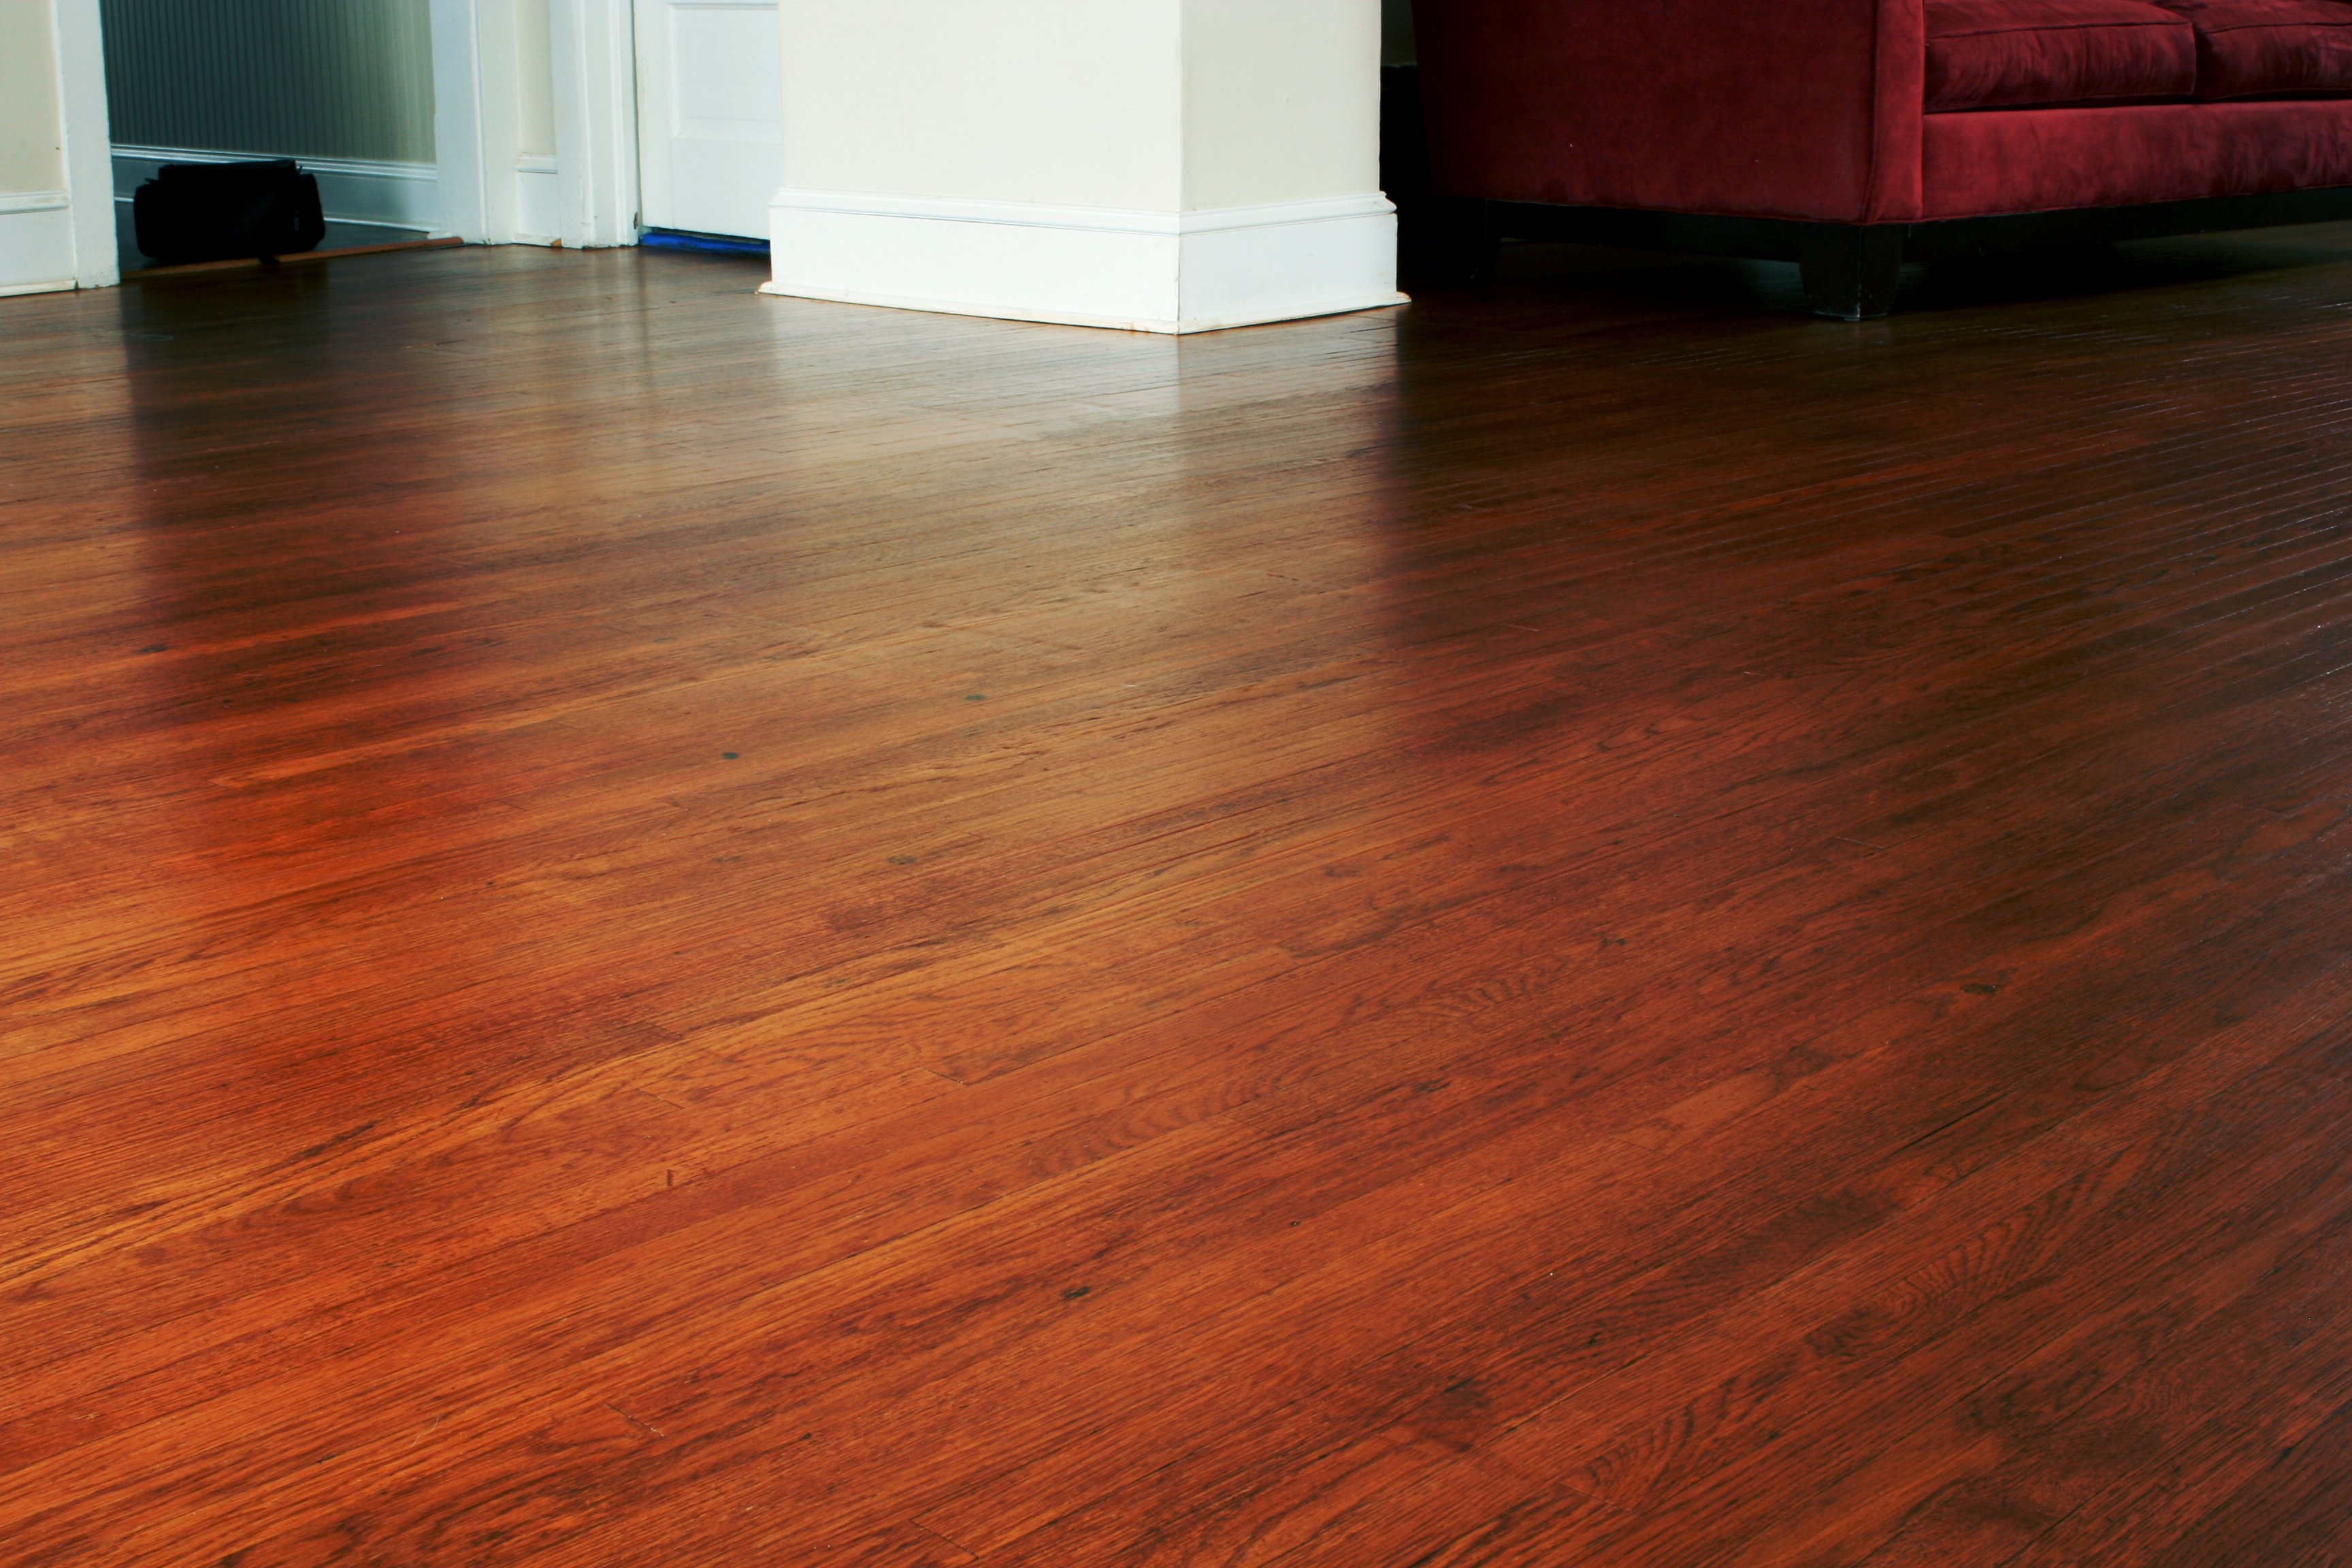 How to diagnose and repair sloping floors homeadvisor for Hardwood flooring nearby